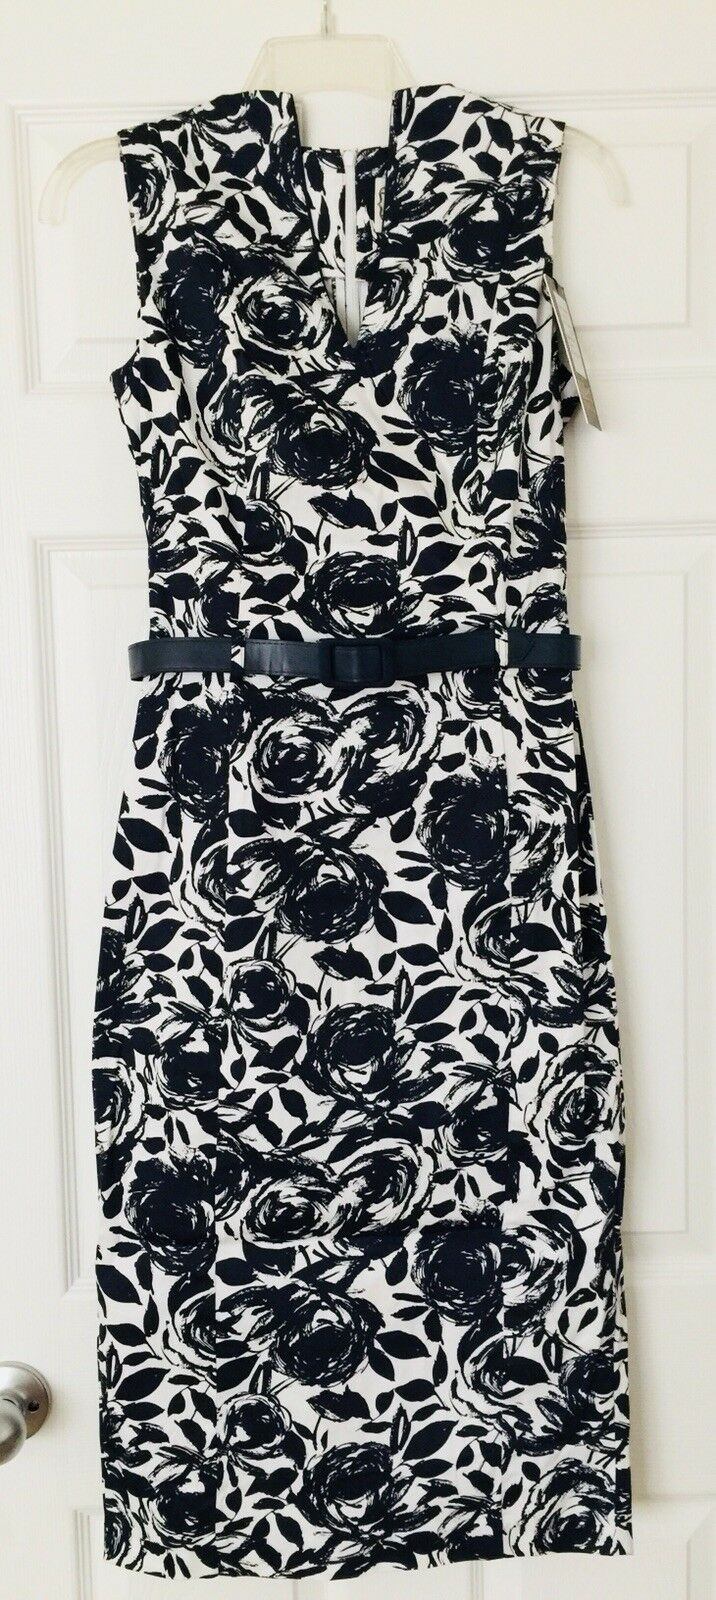 NWT ModCloth Navy White Floral Belted Midi Dress by Collectif Vintage London - S